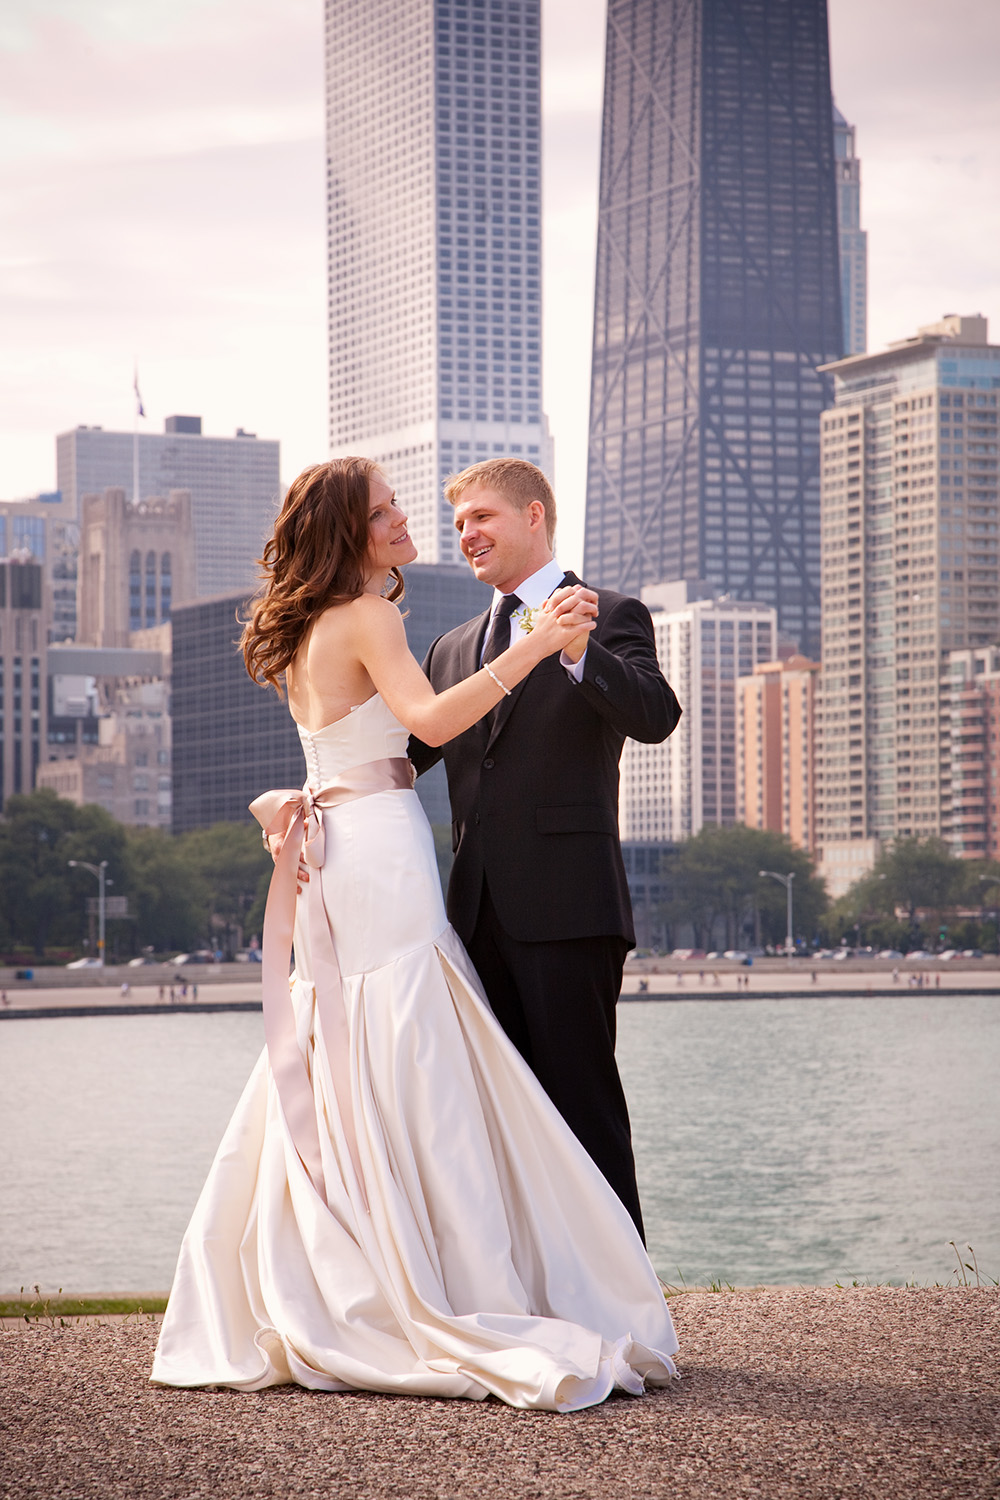 Wedding-photographer-Chicago-1500.jpg